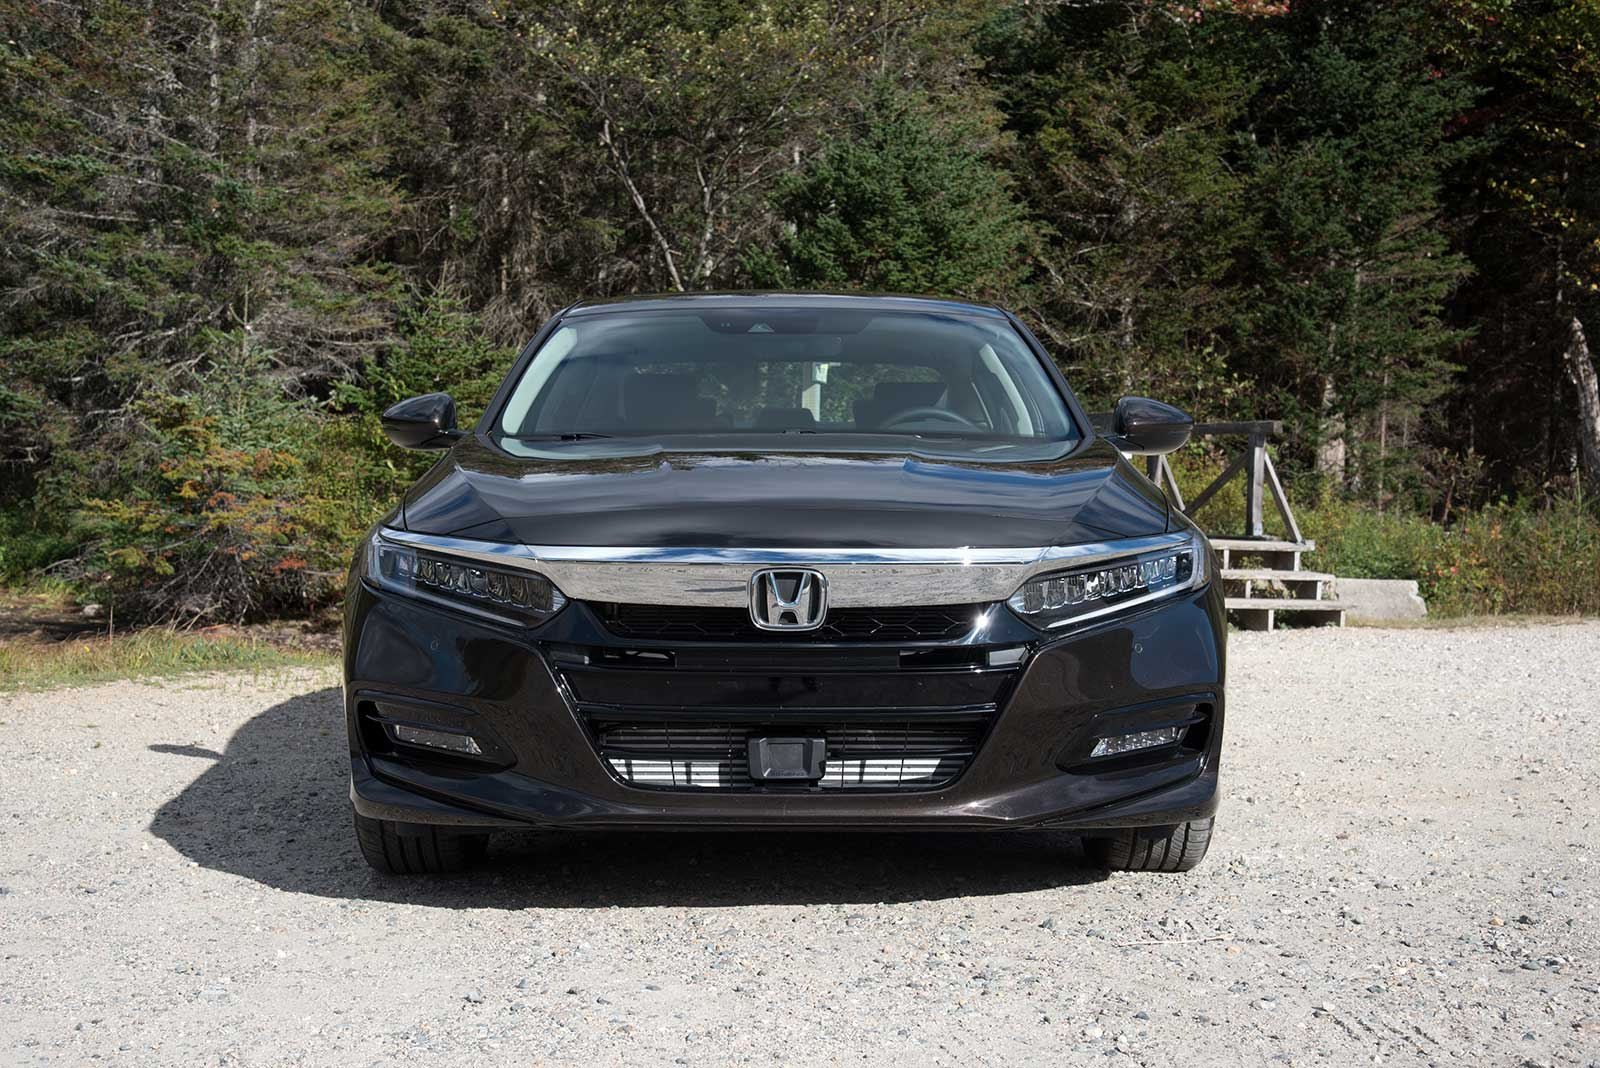 2018 Honda Accord 2 0 Turbo Touring Front 02